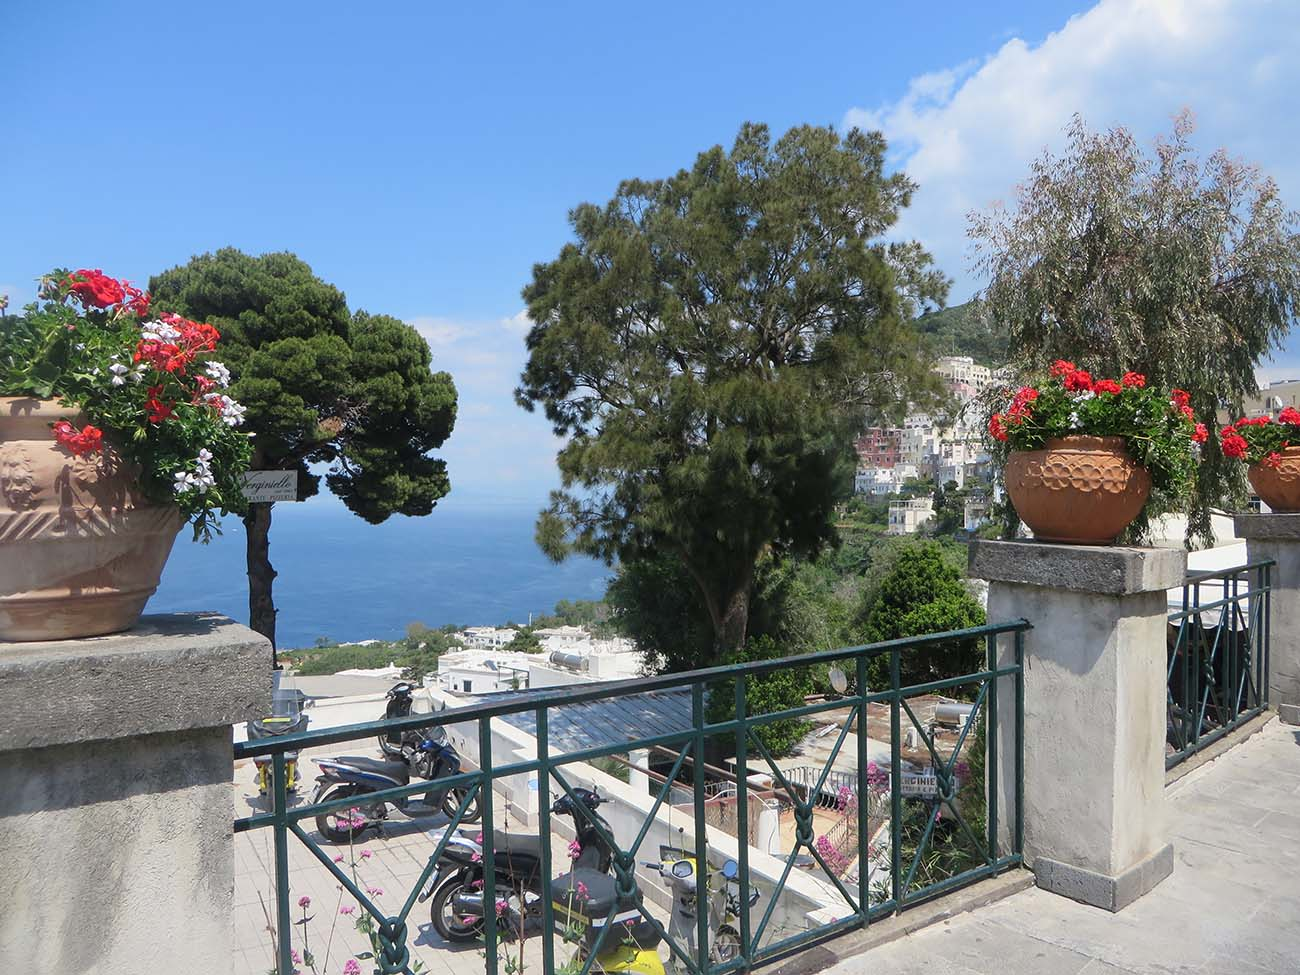 Mediterranean Cruise: Amalfi Coast and Capri